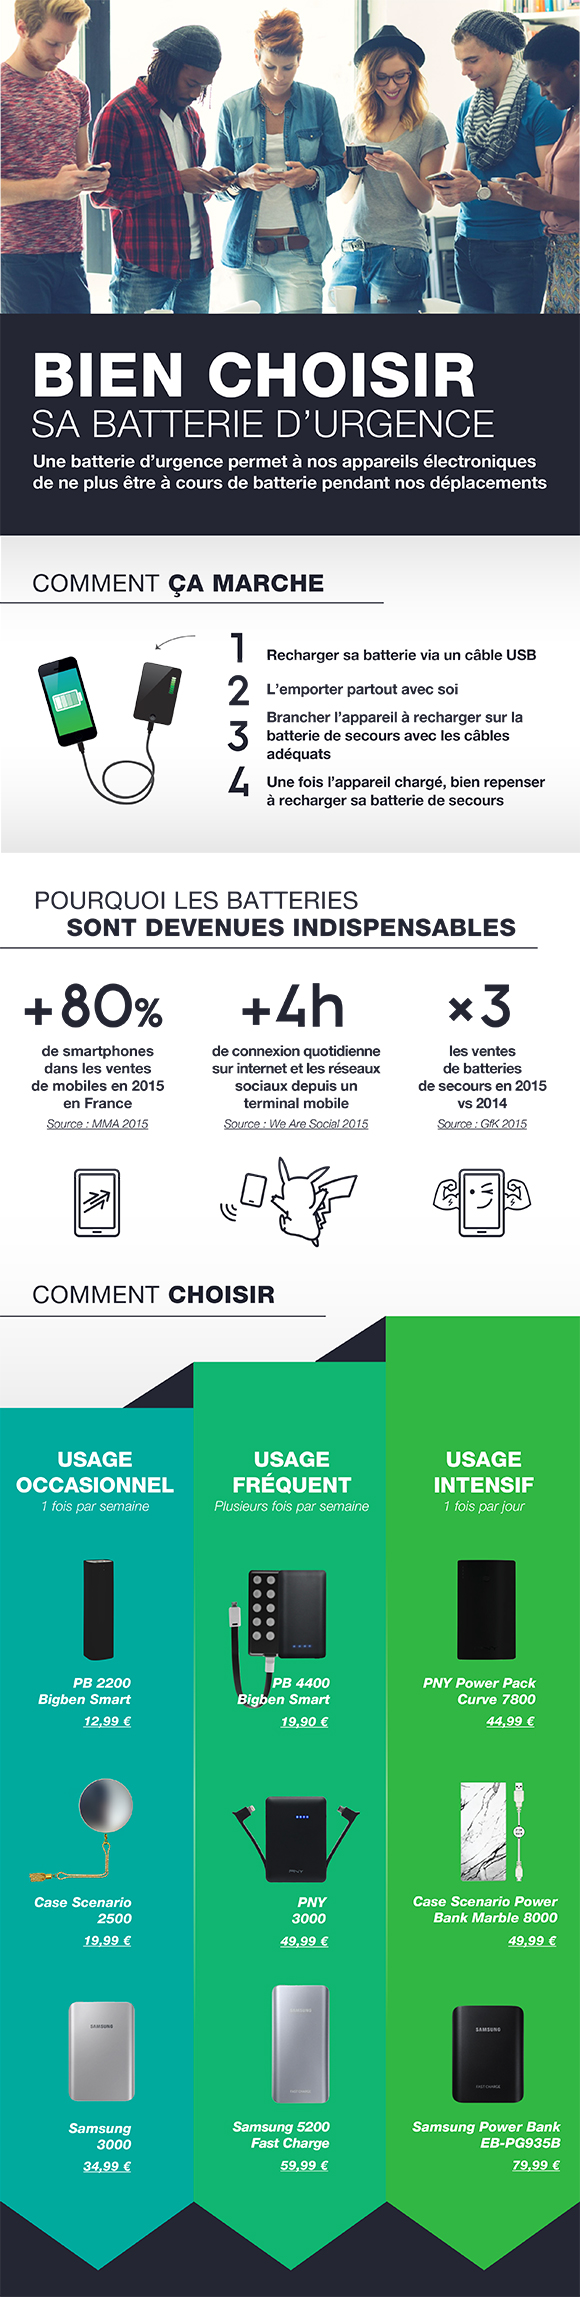 infographie comment bien choisir sa batterie d urgence smartaddict. Black Bedroom Furniture Sets. Home Design Ideas